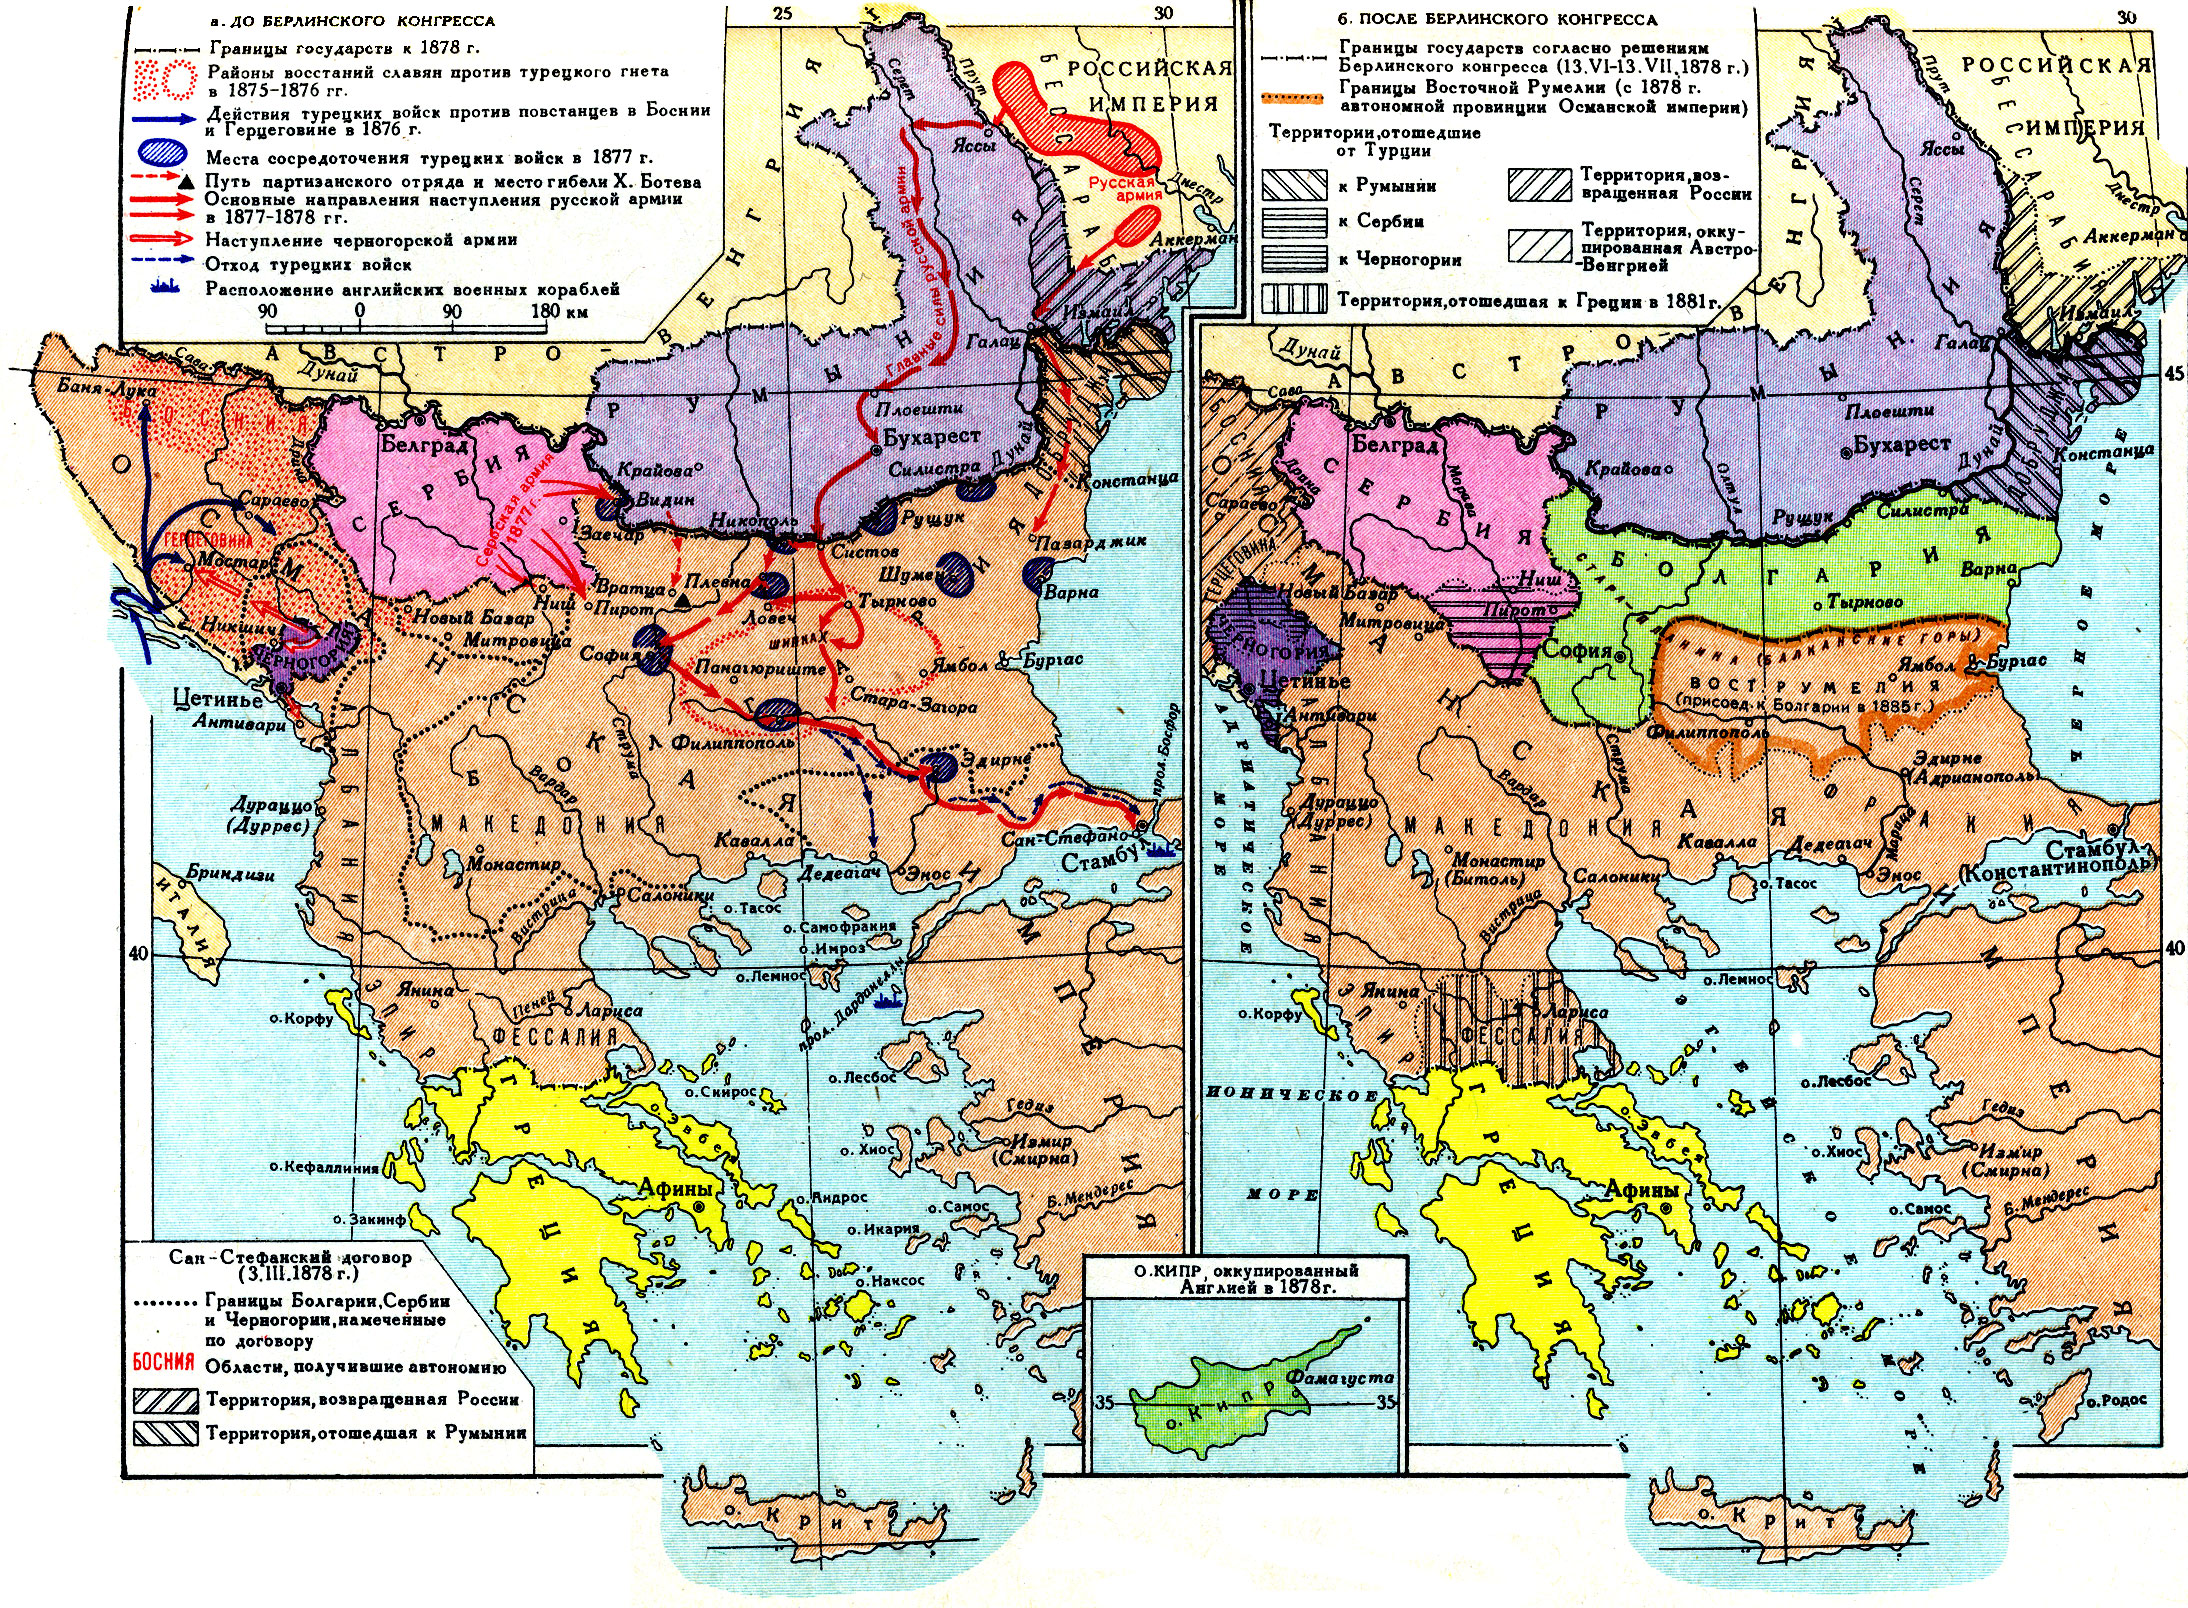 The Balkans before and after Russo-Turkish war 1877-1878